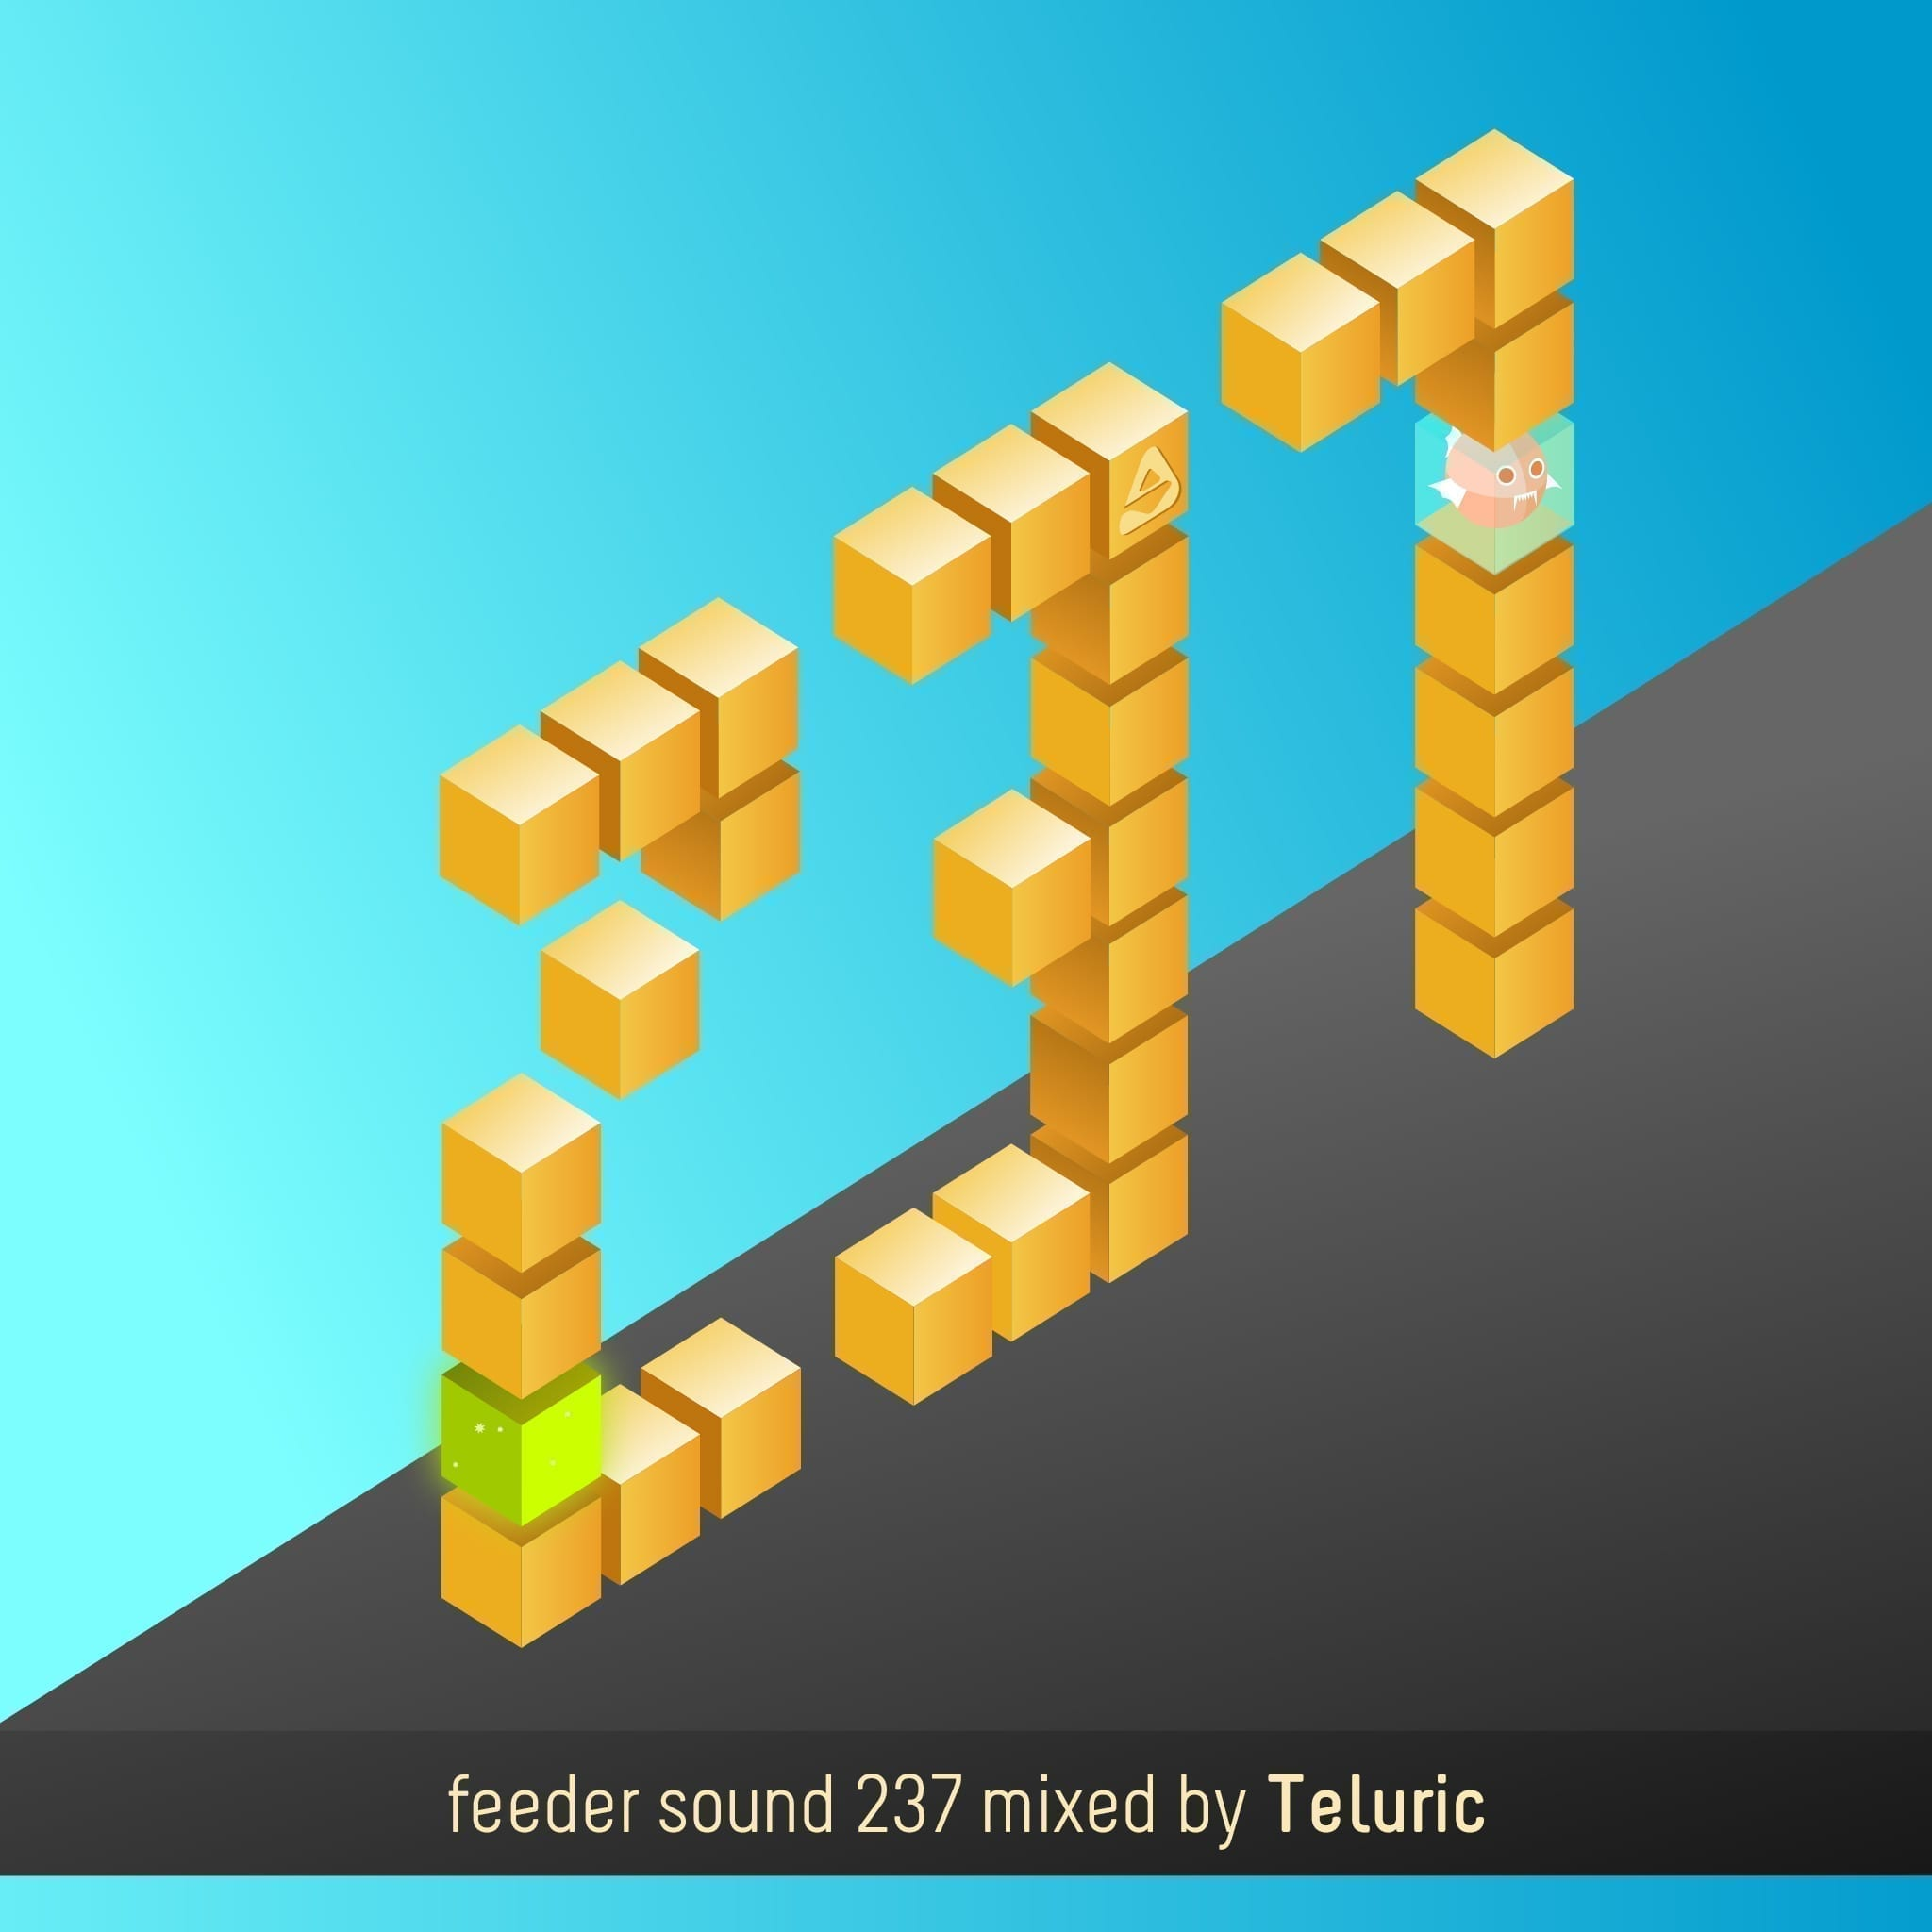 feeder sound 237 mixed by Teluric 01